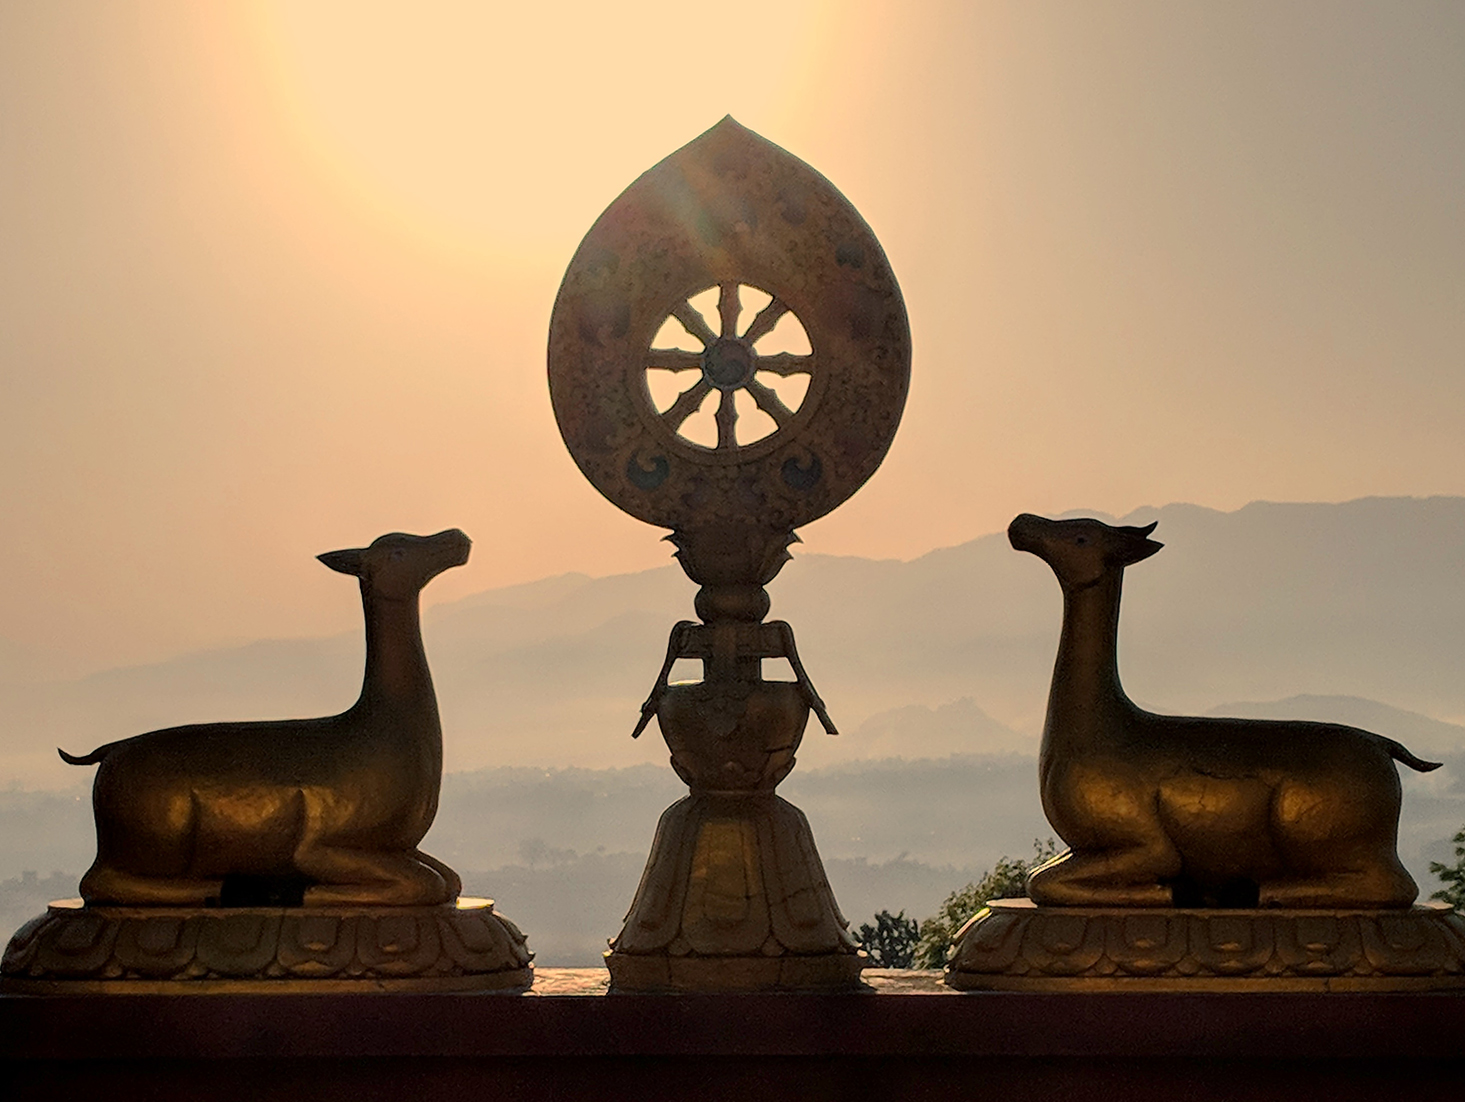 Dharma Wheel and Pair of Deer on top of the roof of Neydo monestary in Kathmandu Nepal. Image taken on the last day of my Yoga Teacher Training with Heather Elton 2018.